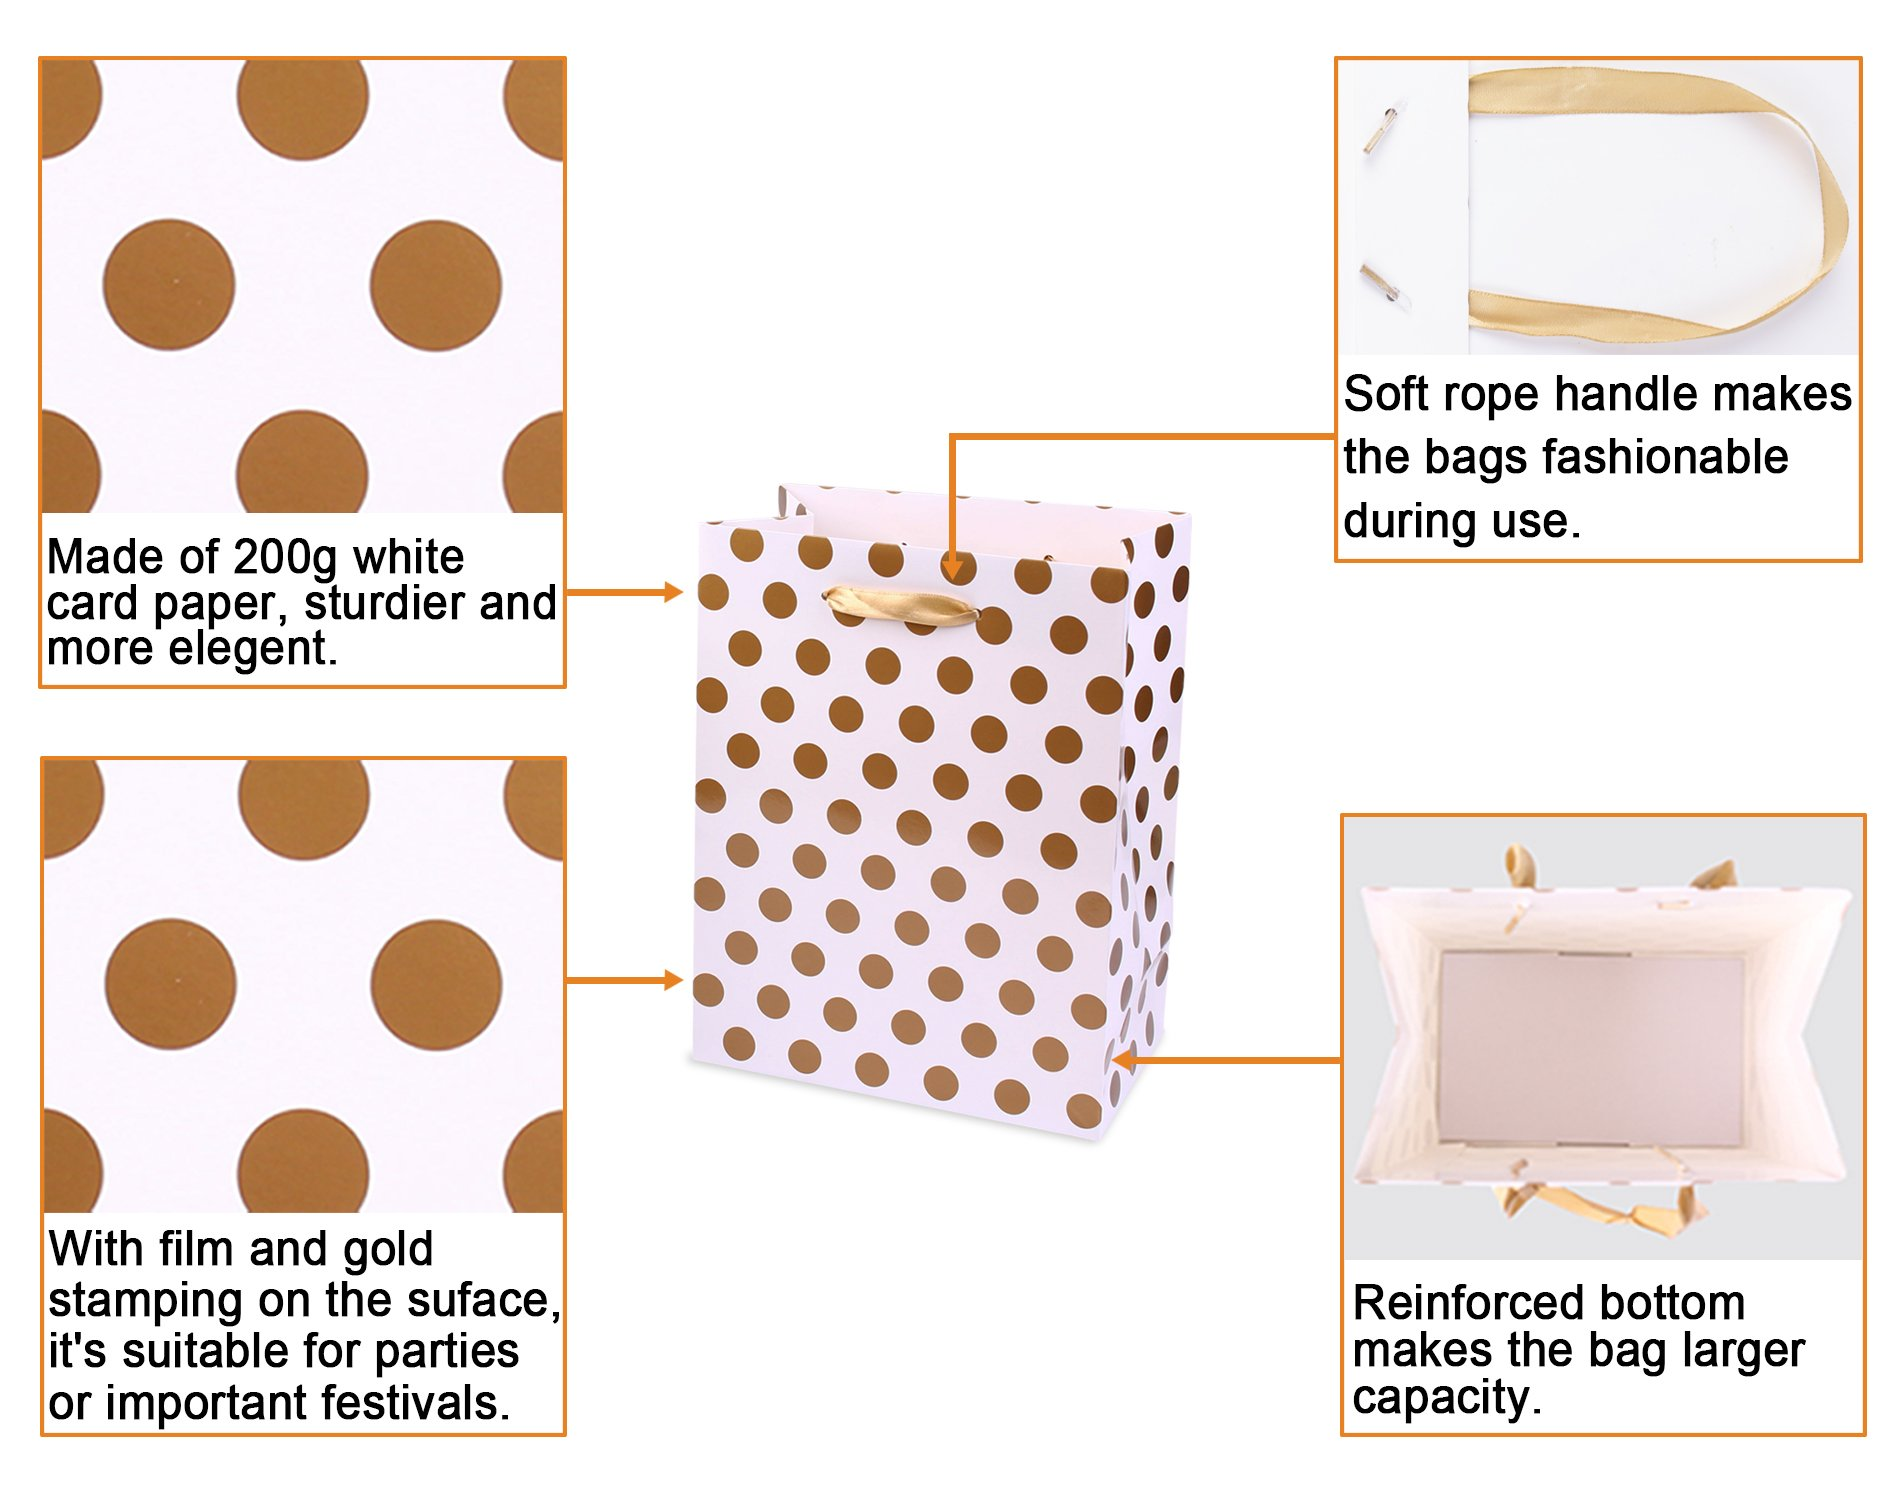 Gift Bags 5.25x3.75x8'' Paper Shopping Bags 12 Gift Boutique Small Metallic Gold Silver Gift Bags Polka Dot Gift Bags Perfect for Weddings, Birthday, Graduation, Gift Wrap Bags by BagDream (Image #3)